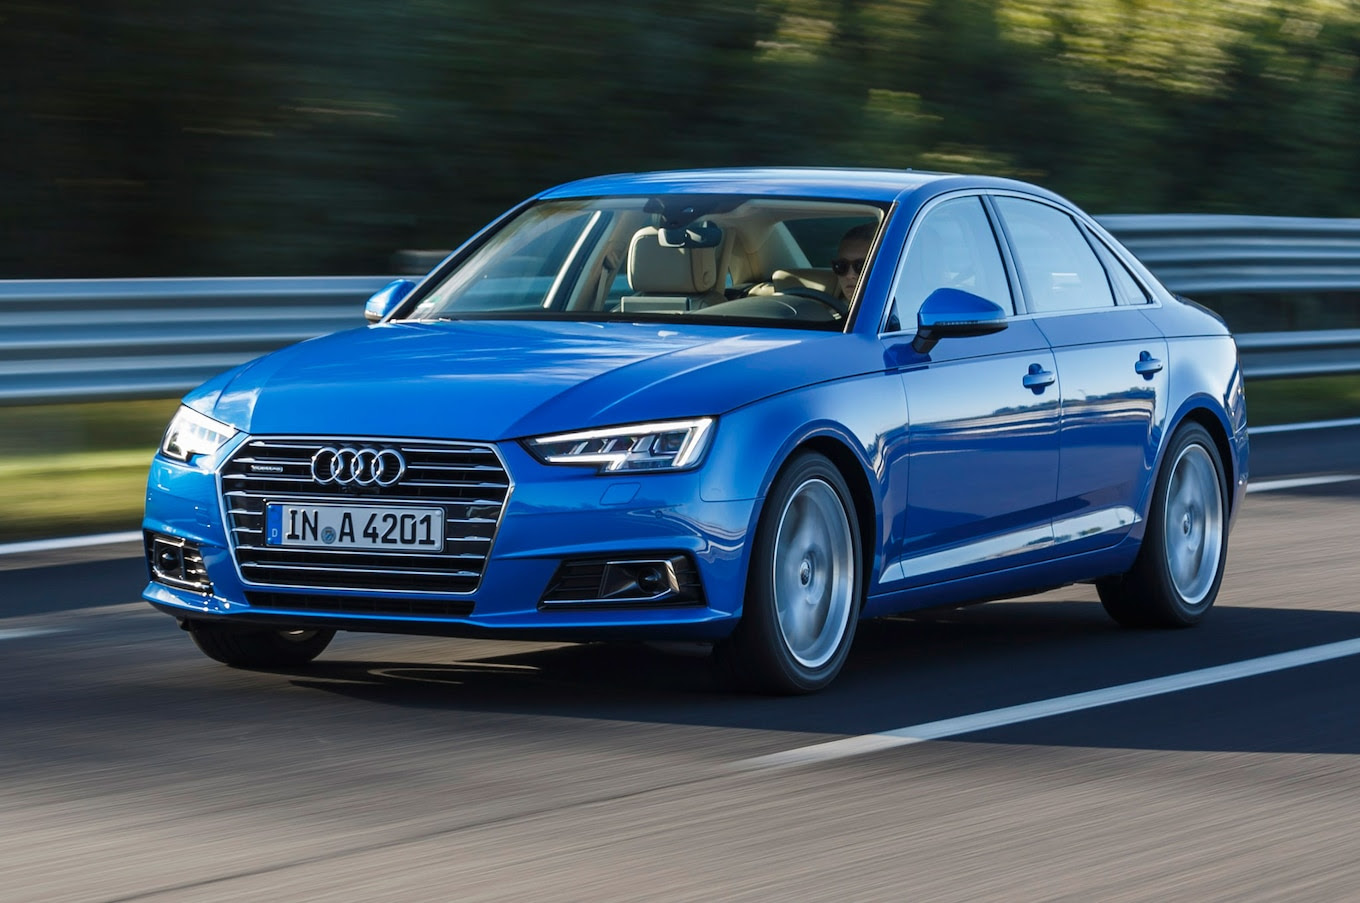 2017 Audi A5 Interior Rear View Images | 2017 - 2018 Best Cars Reviews